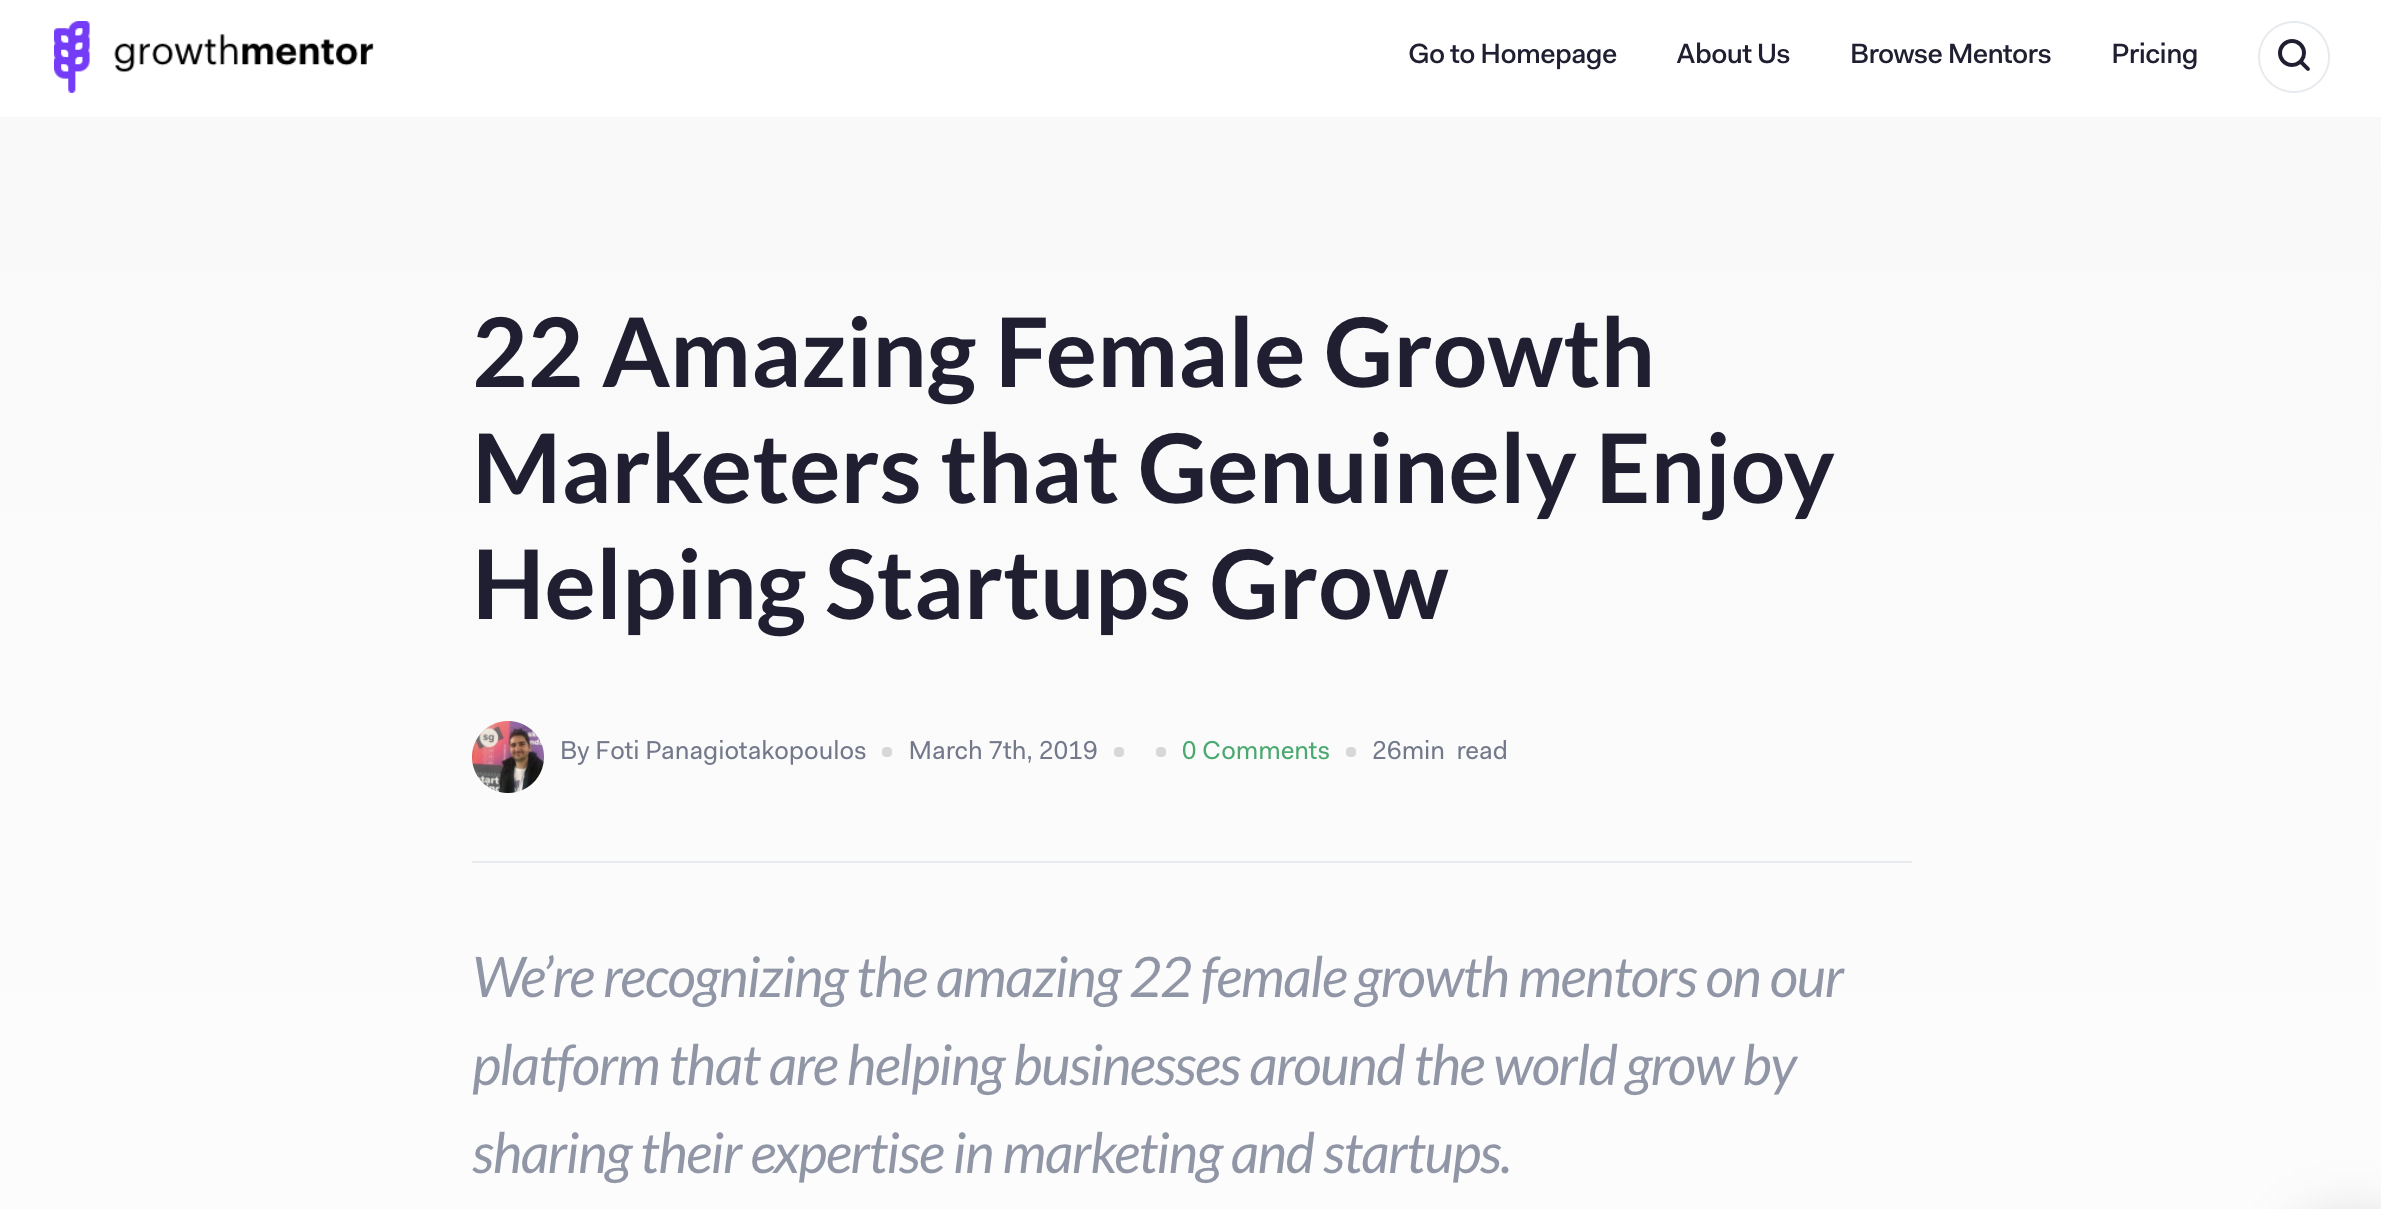 22 Amazing Female Growth Marketers that Genuinely Enjoy Helping Startups Grow